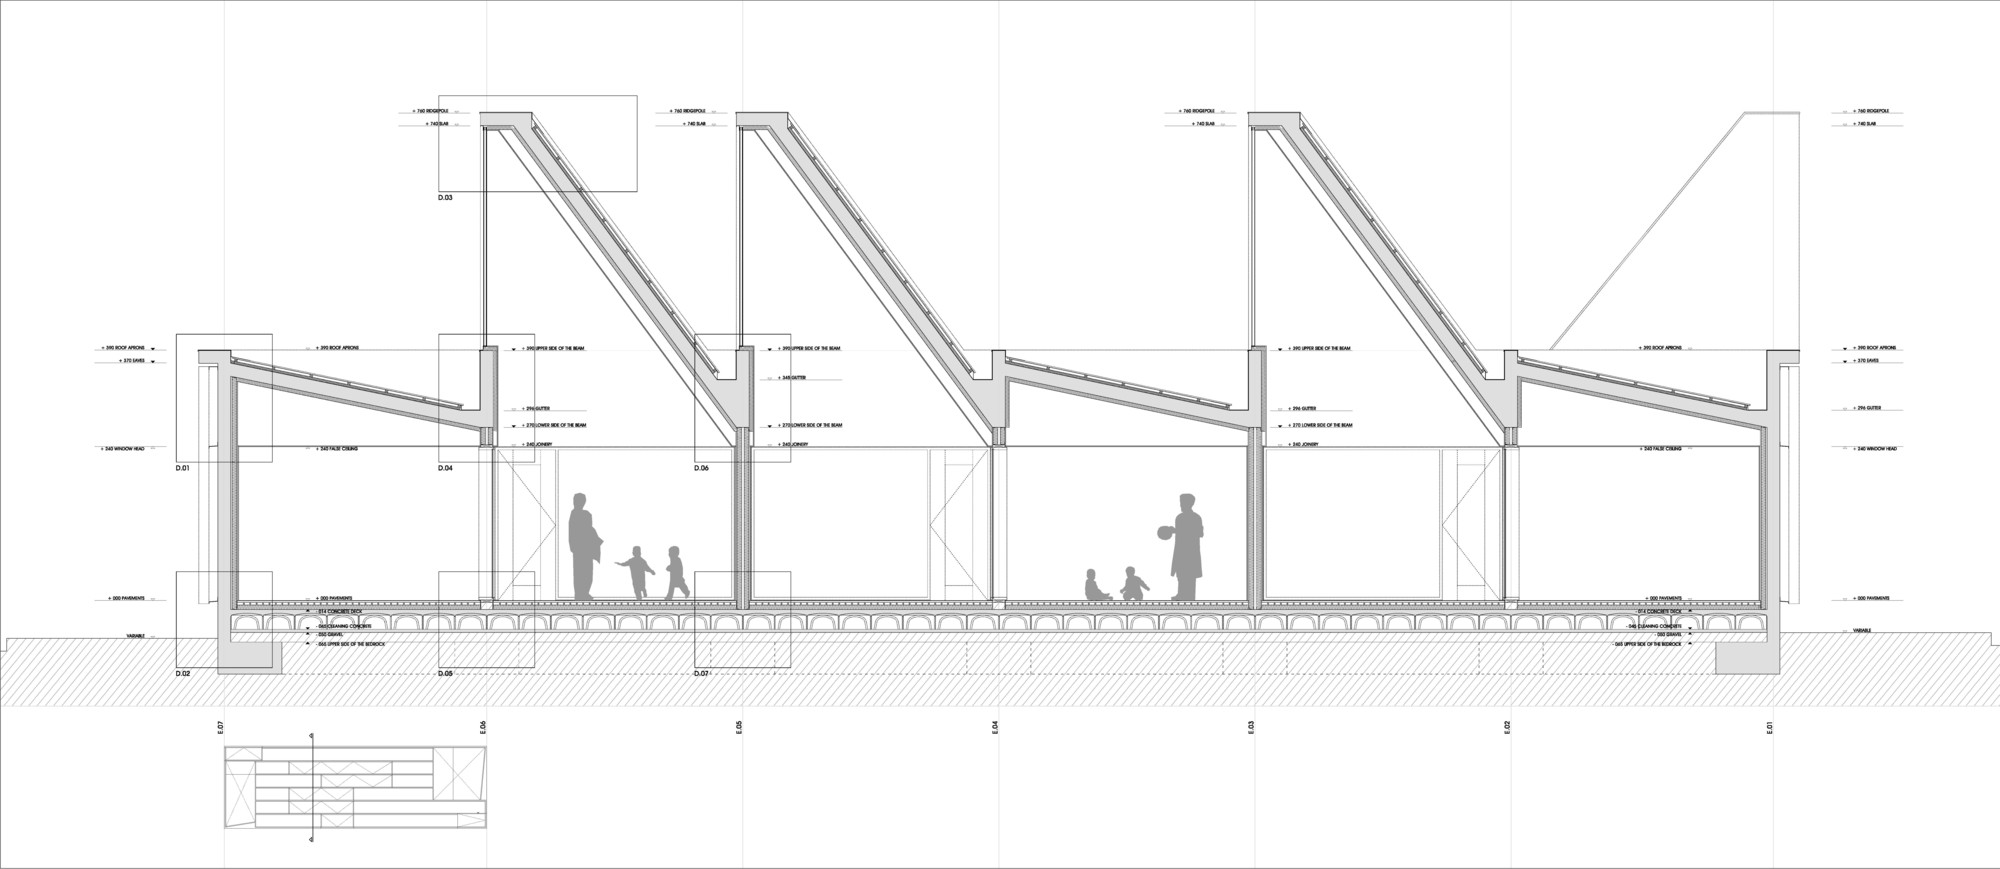 Building sections of the nondiscriminat